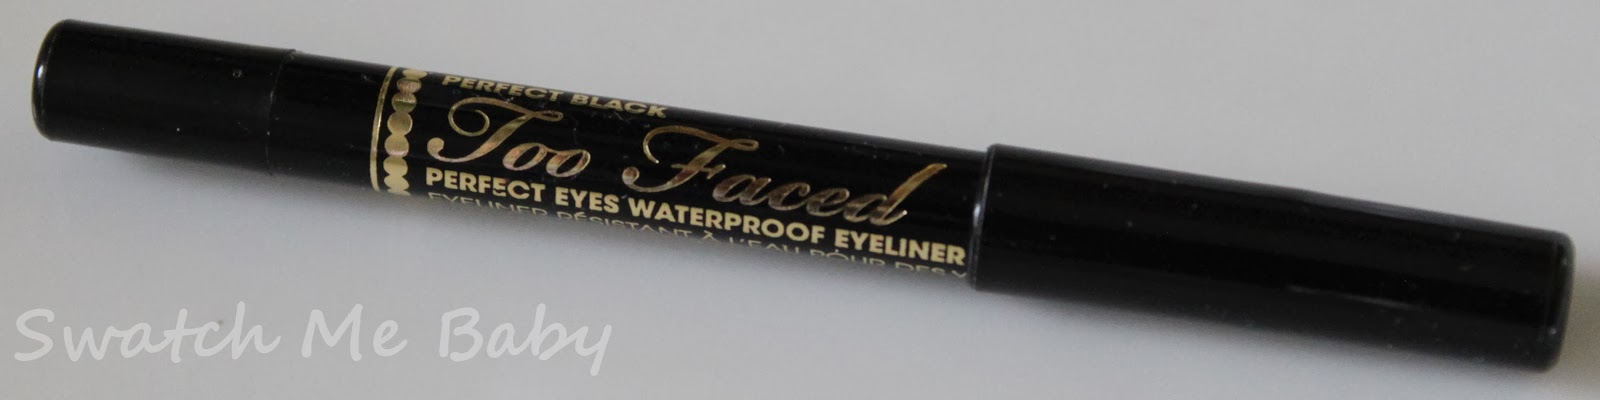 too faced perfect black eyeliner